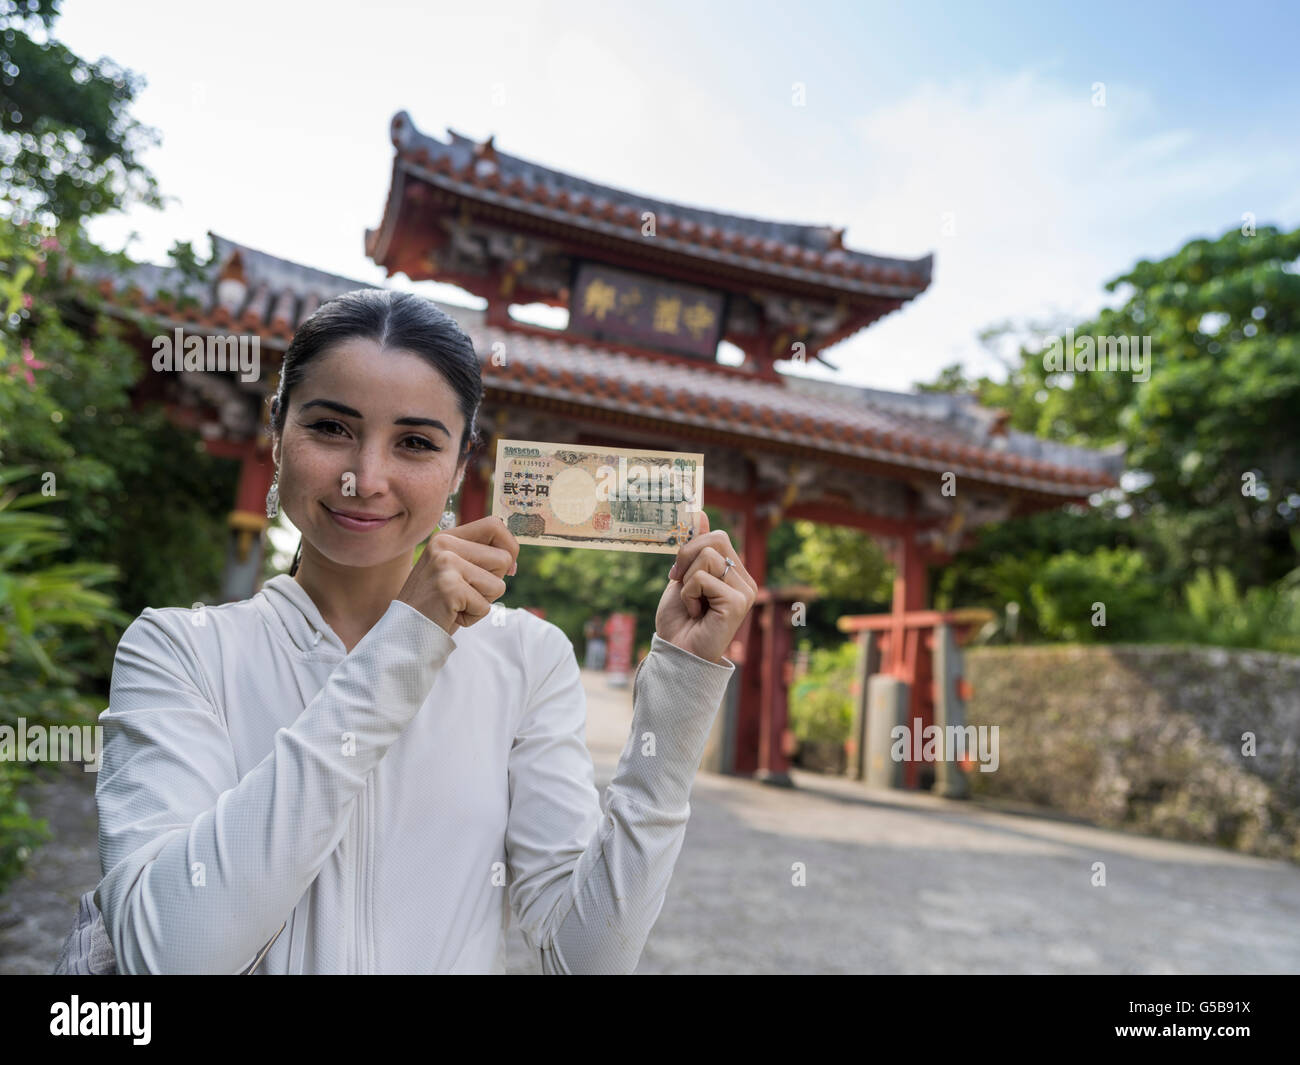 Visitor (model released) with Japanese 2000 yen note in front of the Shureimon Gate at Shuri Castle, Naha City, - Stock Image